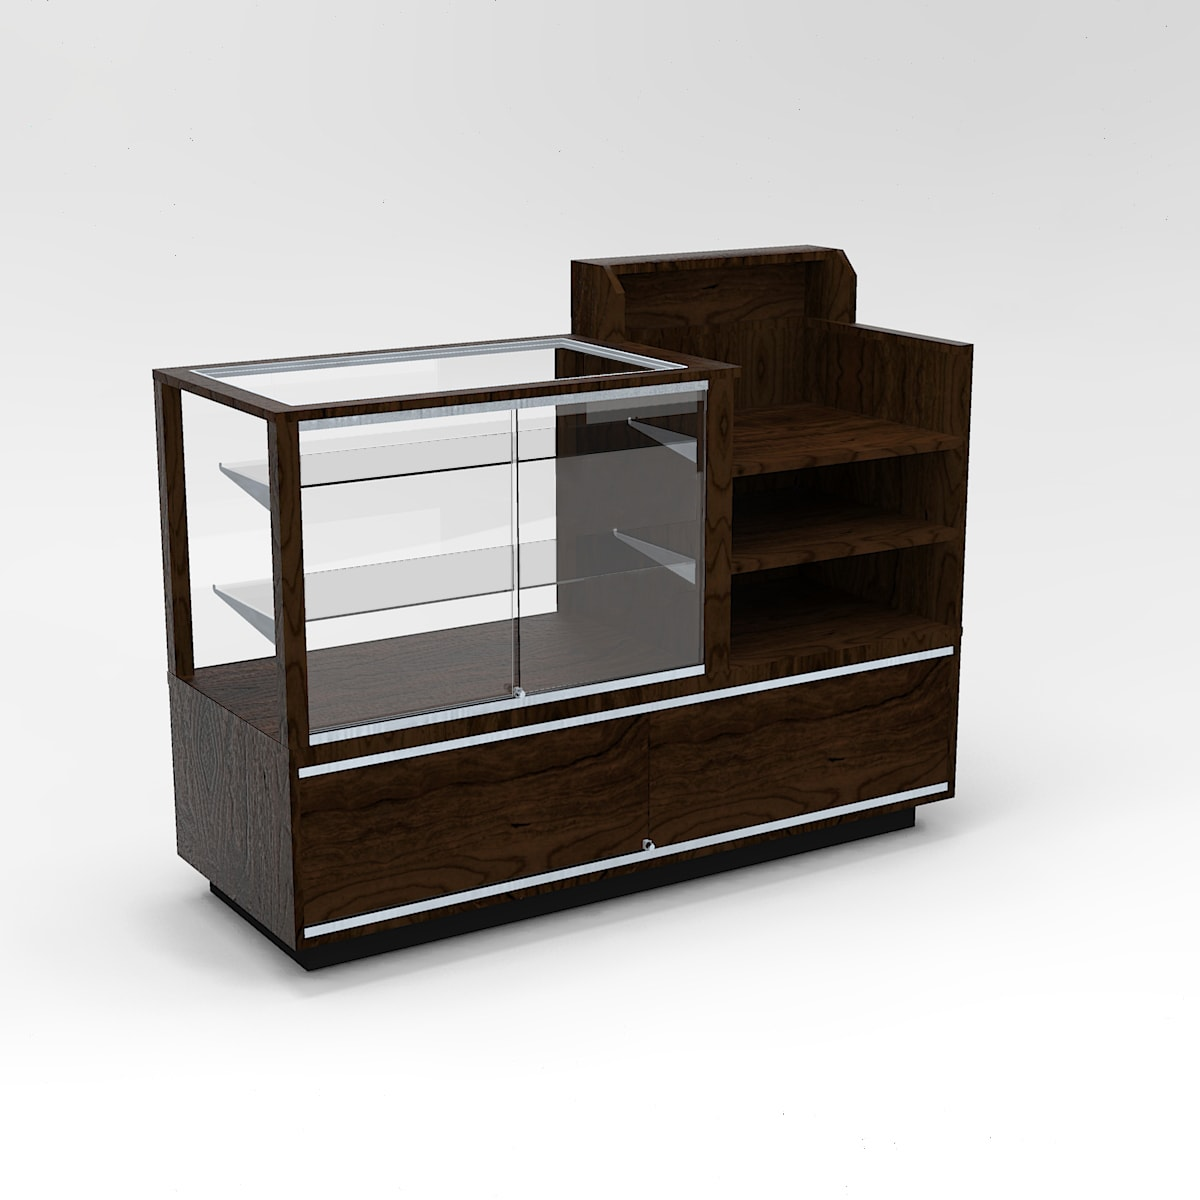 Full Vision Contemporary Cash Wrap Display Case To Purchase